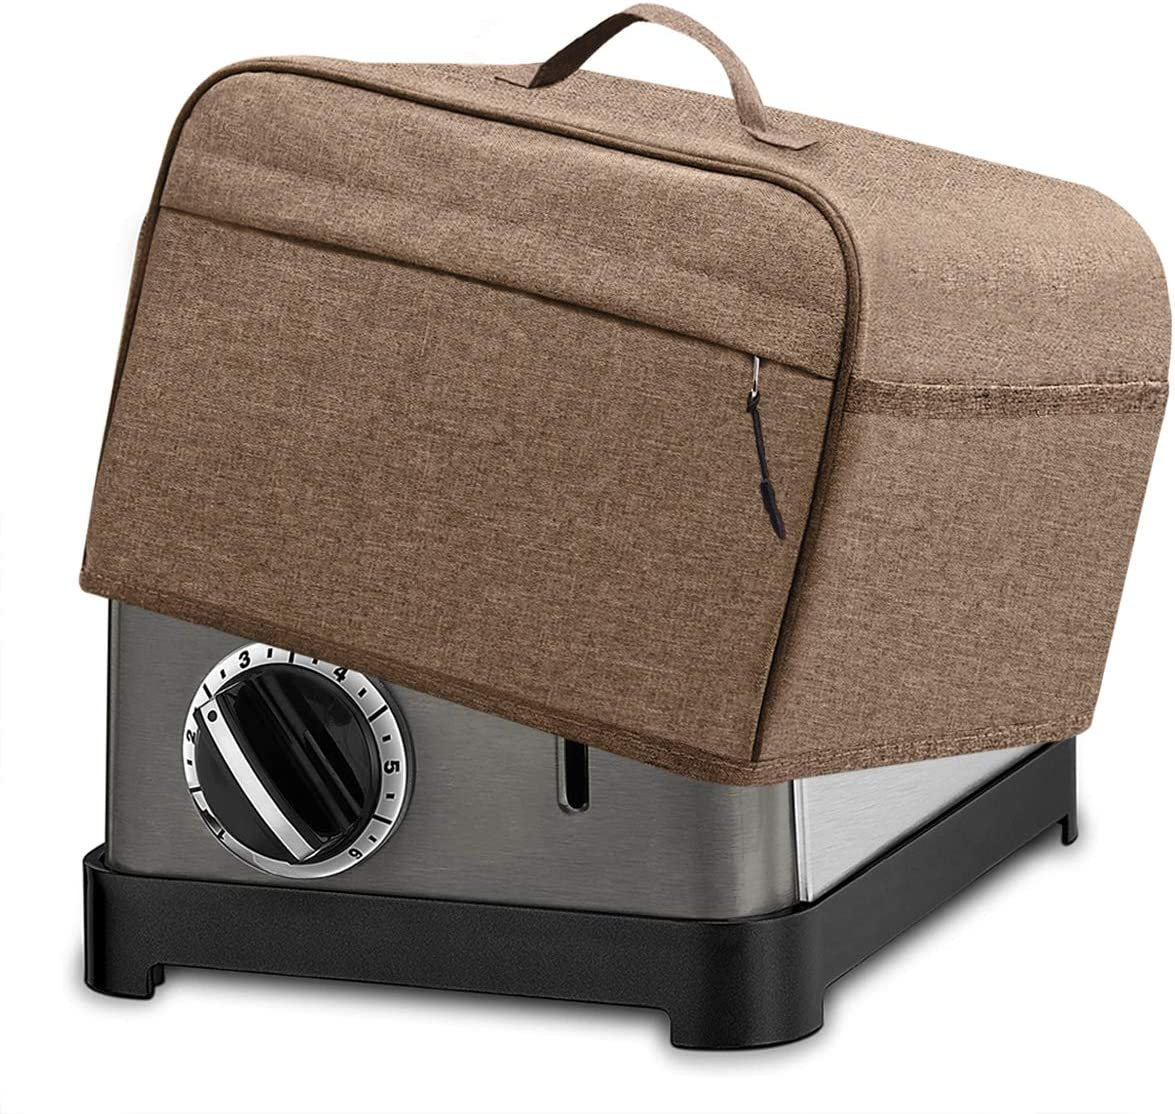 INMUA 2 Slice Toaster Cover with 2 Pockets, Toaster Appliance Cover with Top handle, Dust and Fingerprint Protection, Machine Washable (Brown)